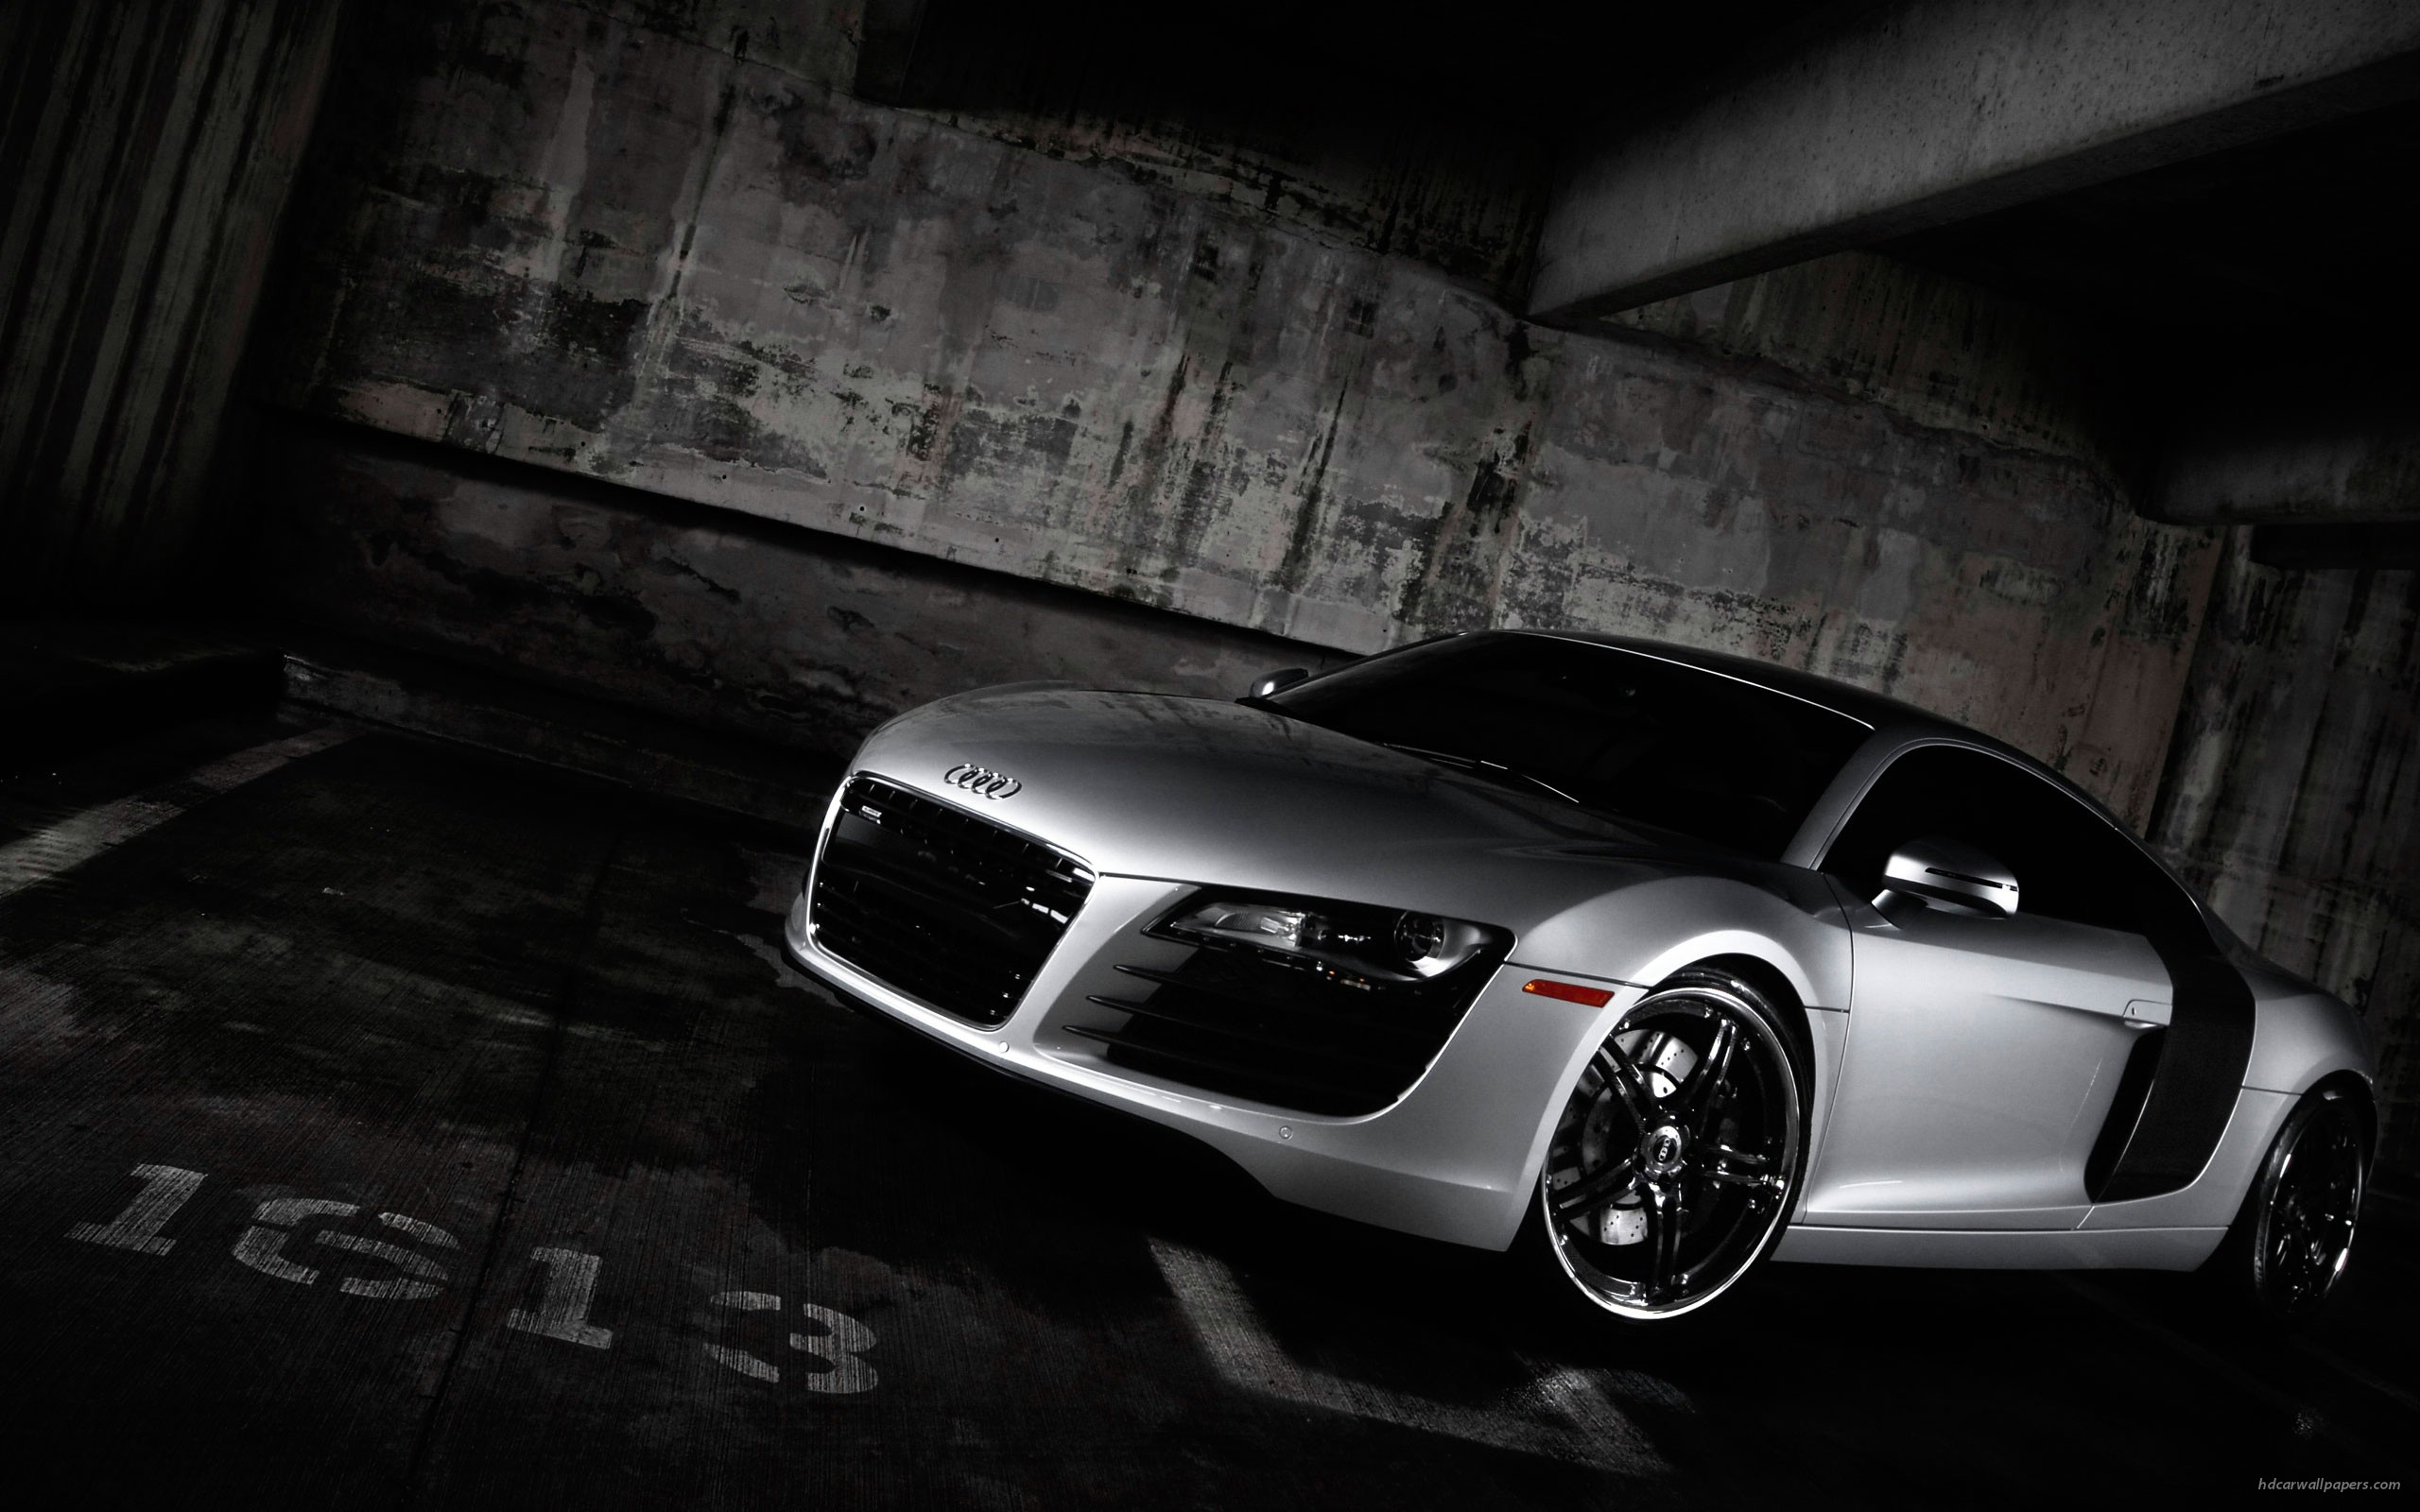 Audi R8 HD Widescreen Wallpapers | HD Wallpapers